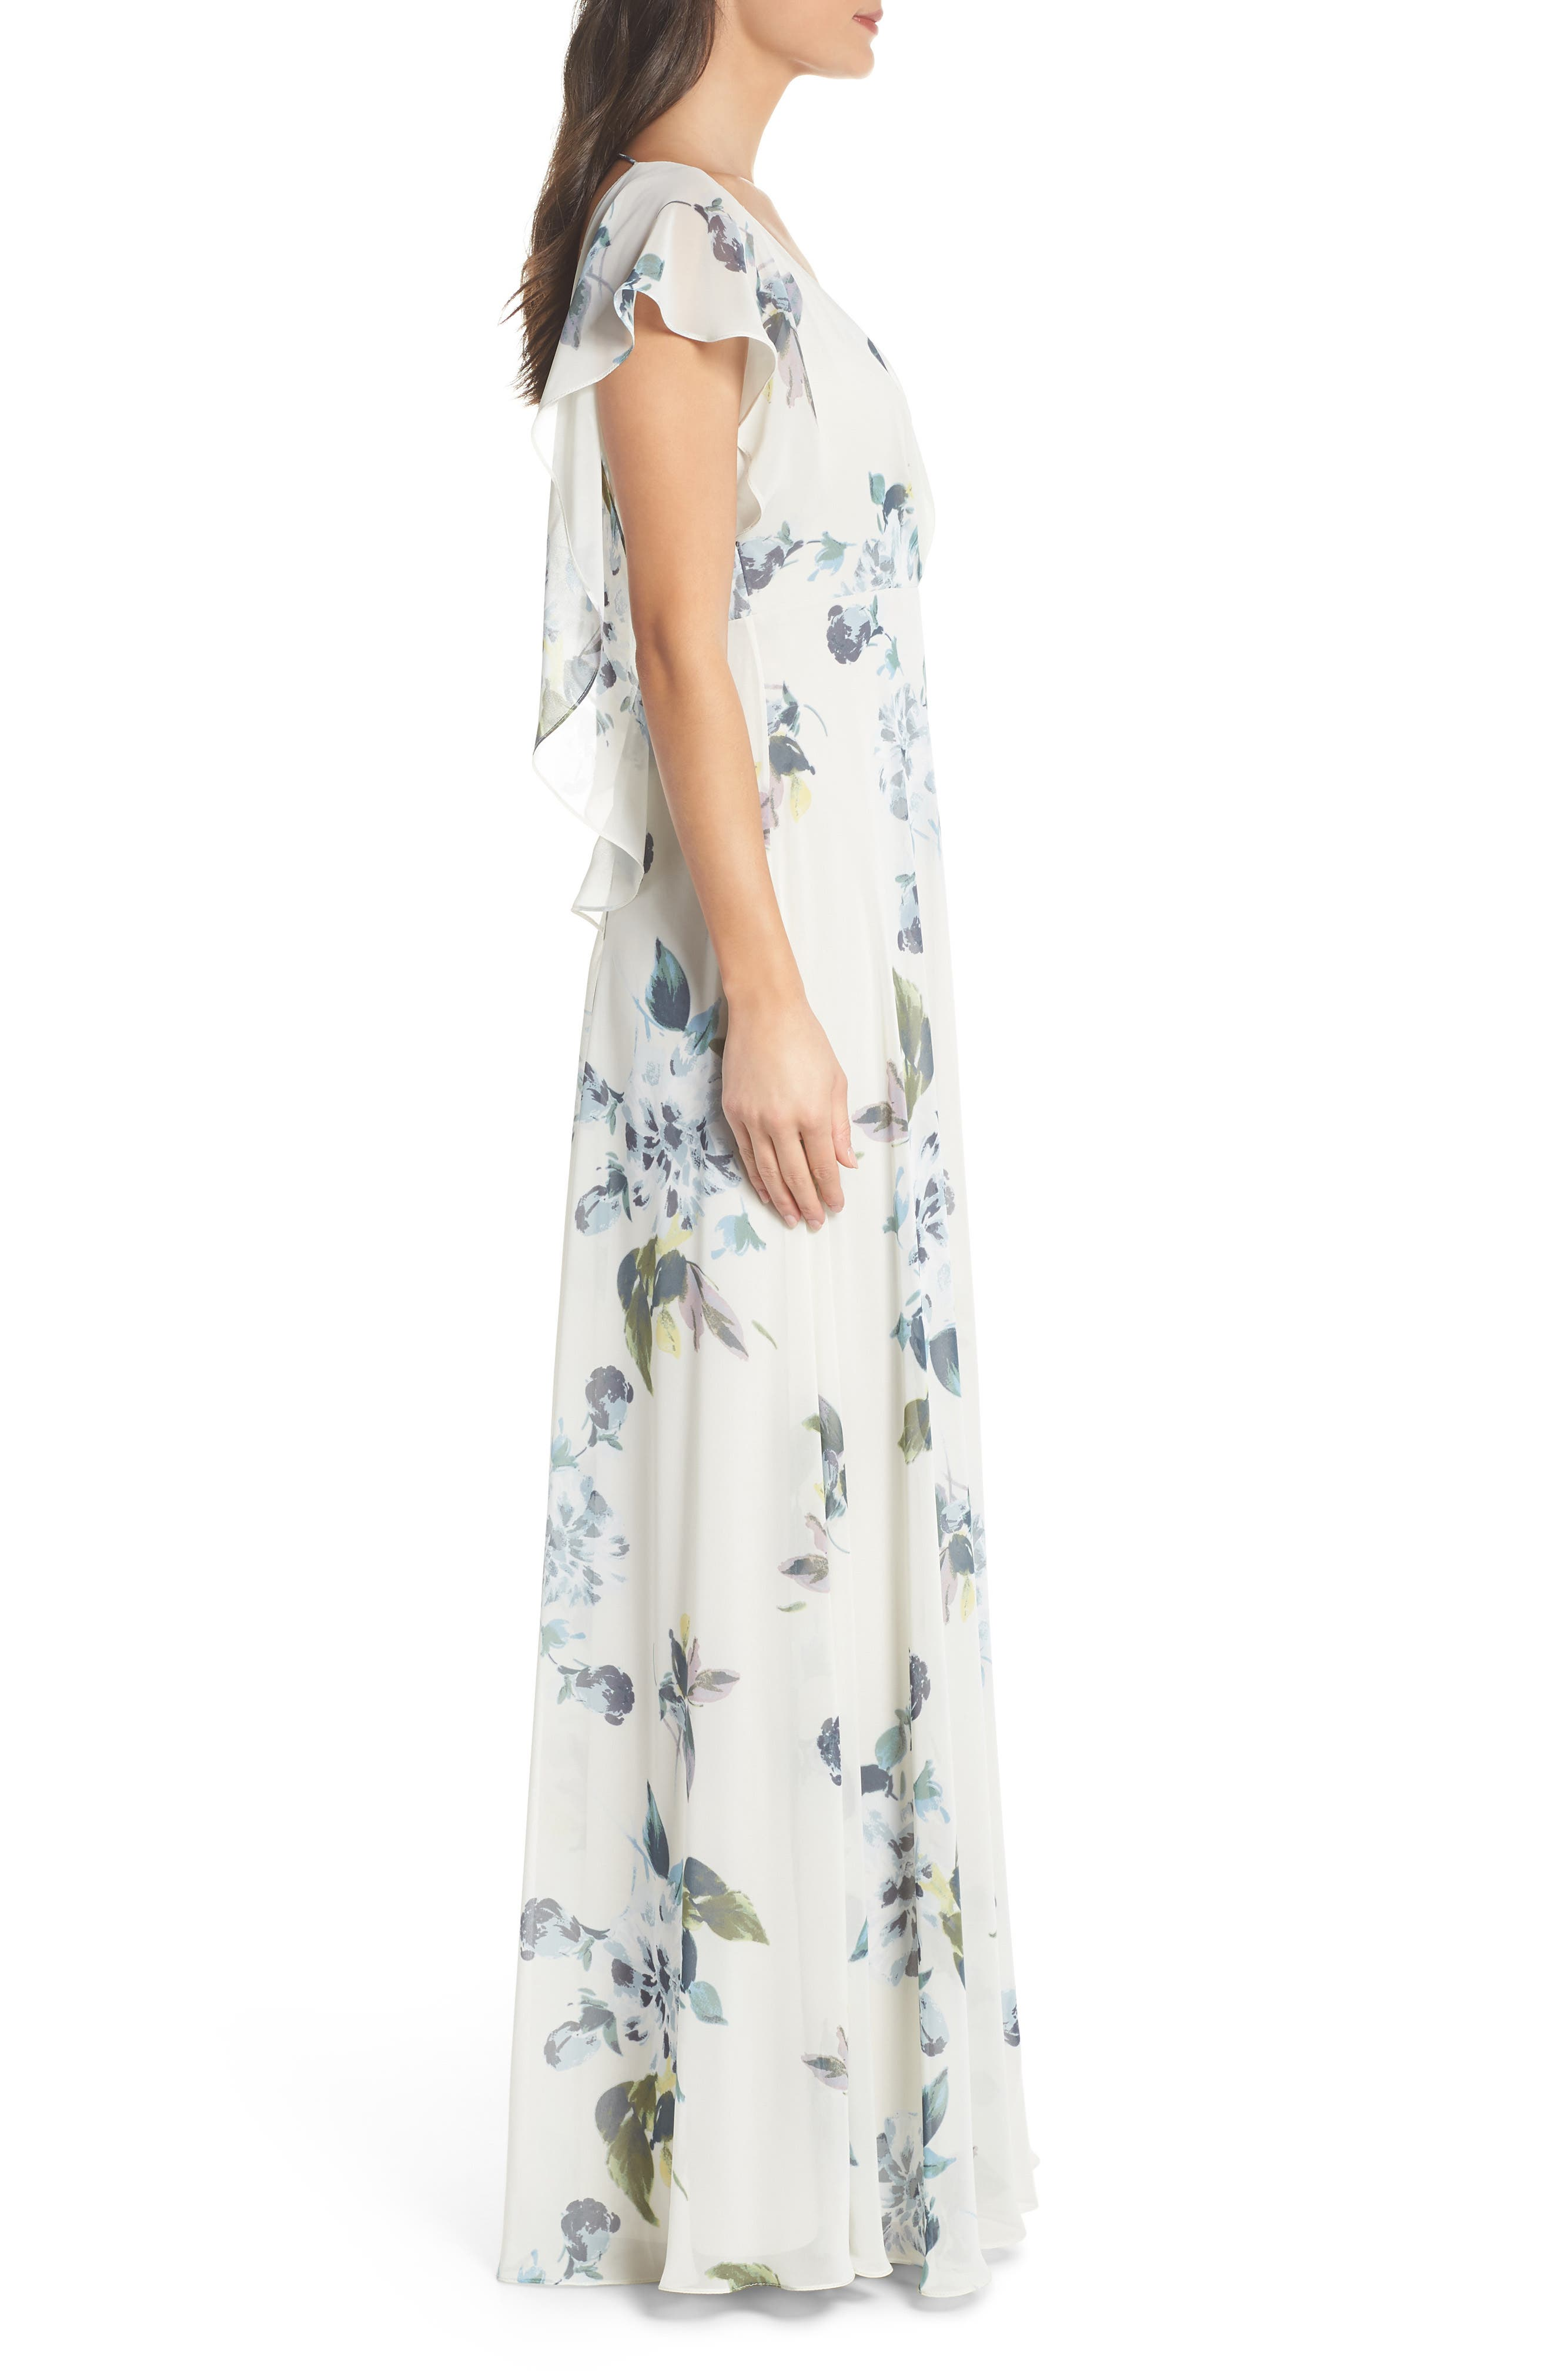 Alanna Ohana Print Open Back Print Chiffon Gown,                             Alternate thumbnail 3, color,                             Soft Sage Blue